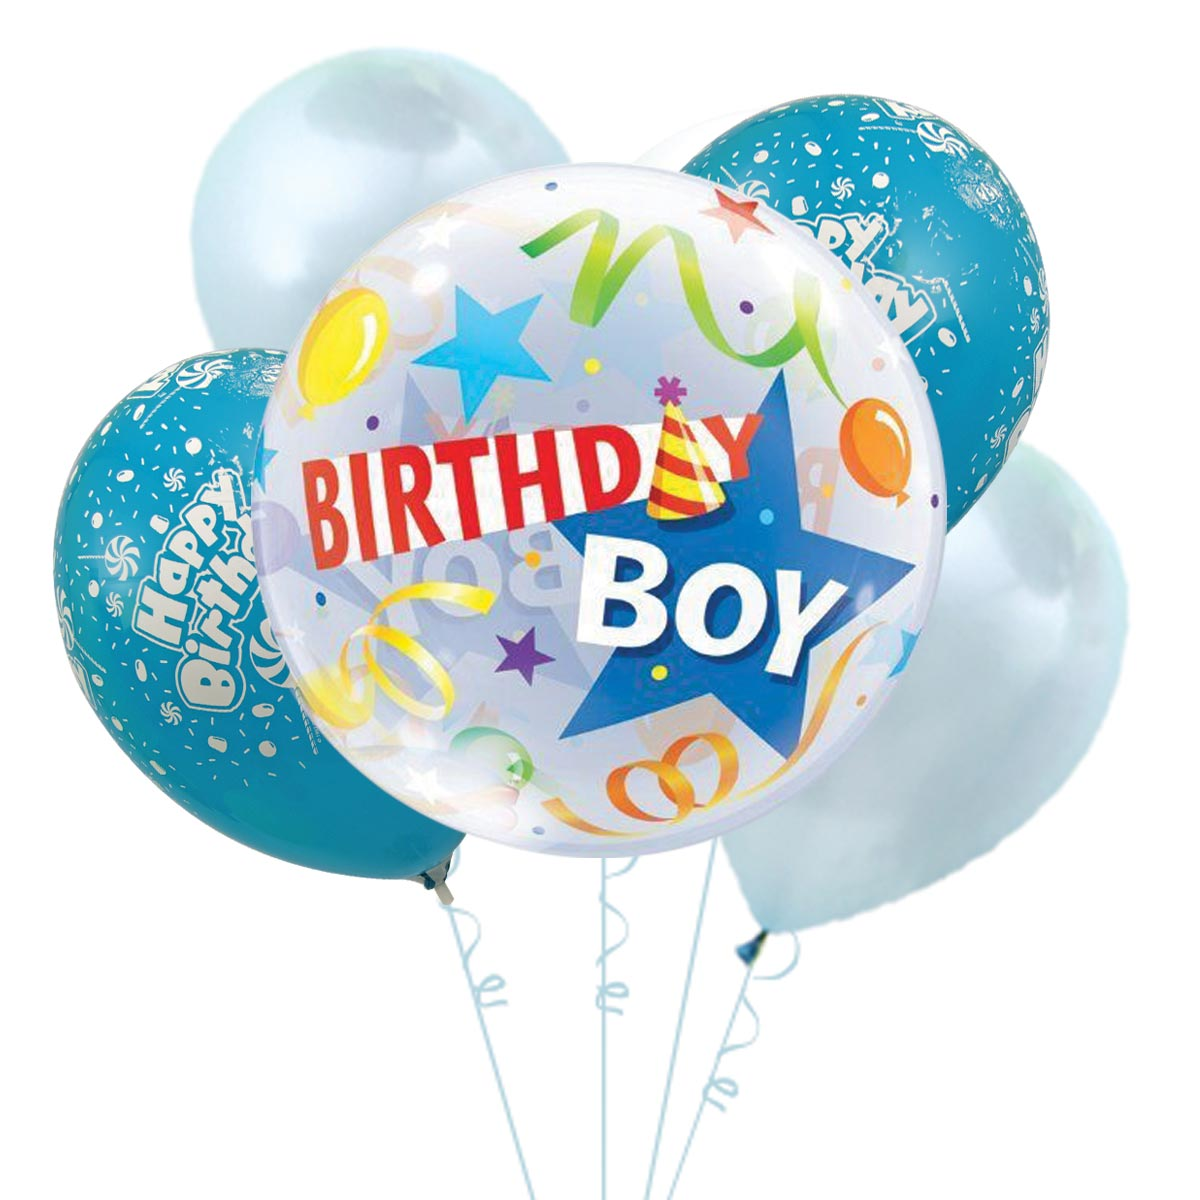 HBQ1708 best birthday boy helium balloon bouquet